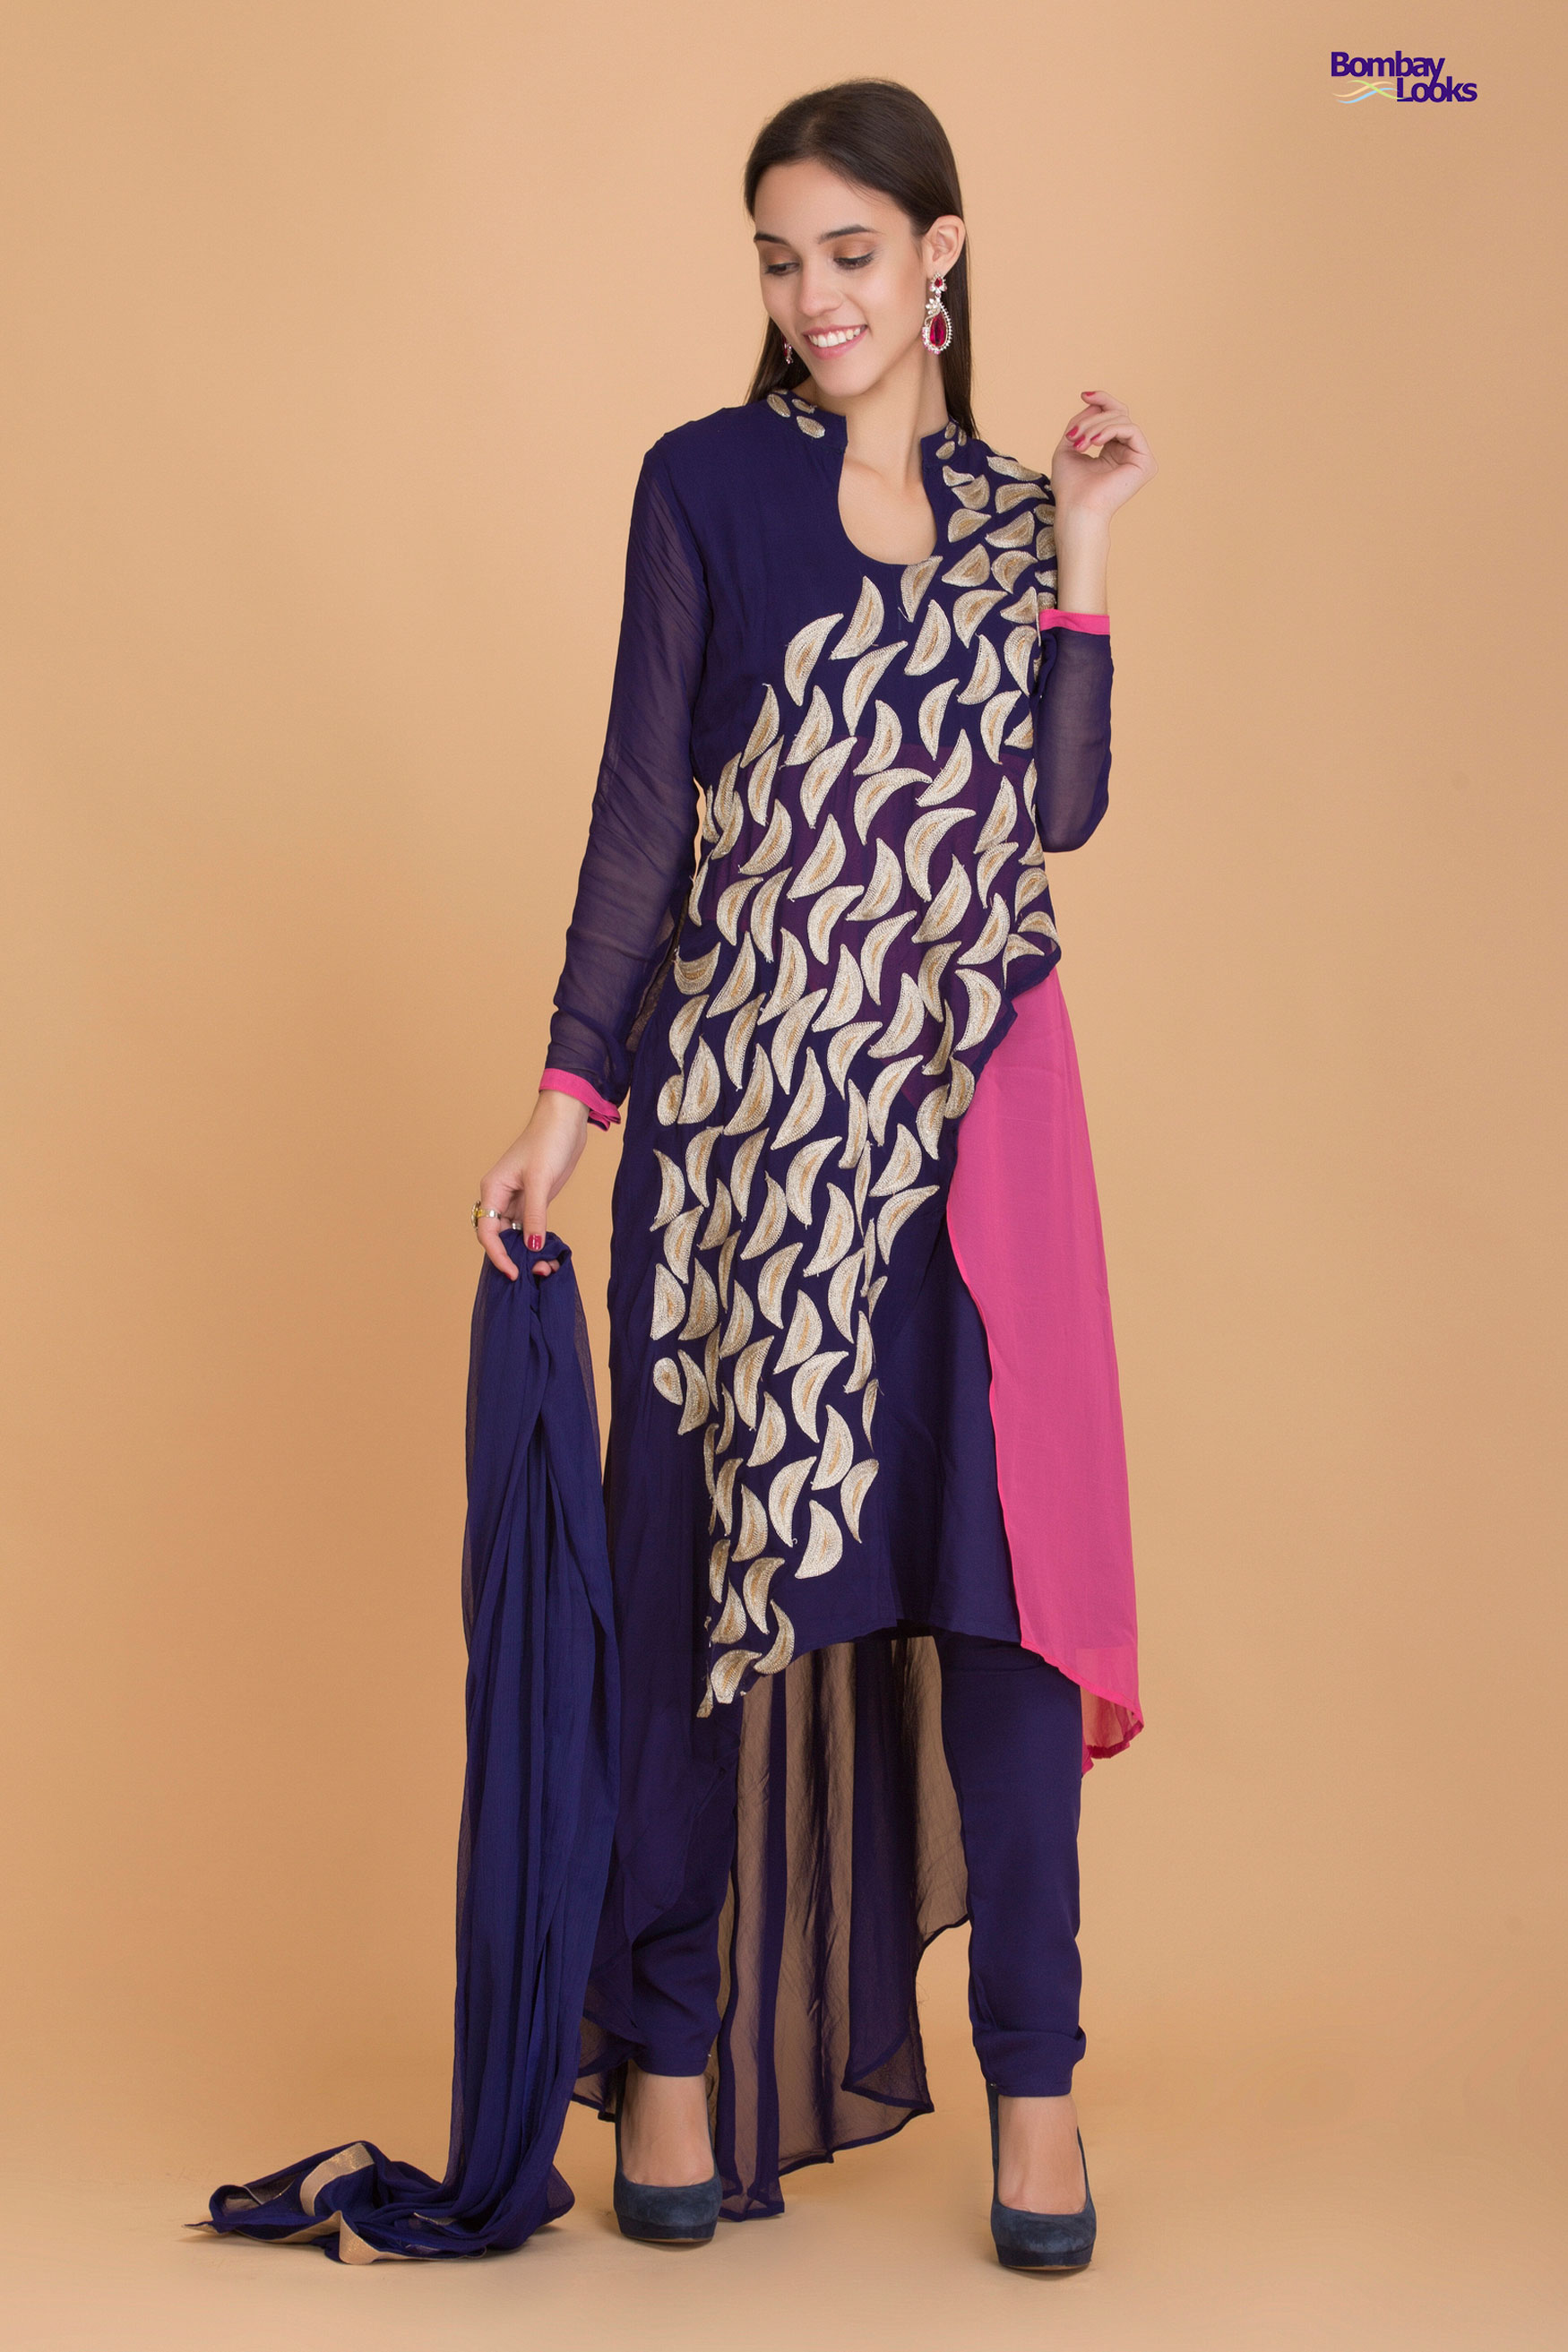 Beauful foliage embroidered suit in blue and pink and layers